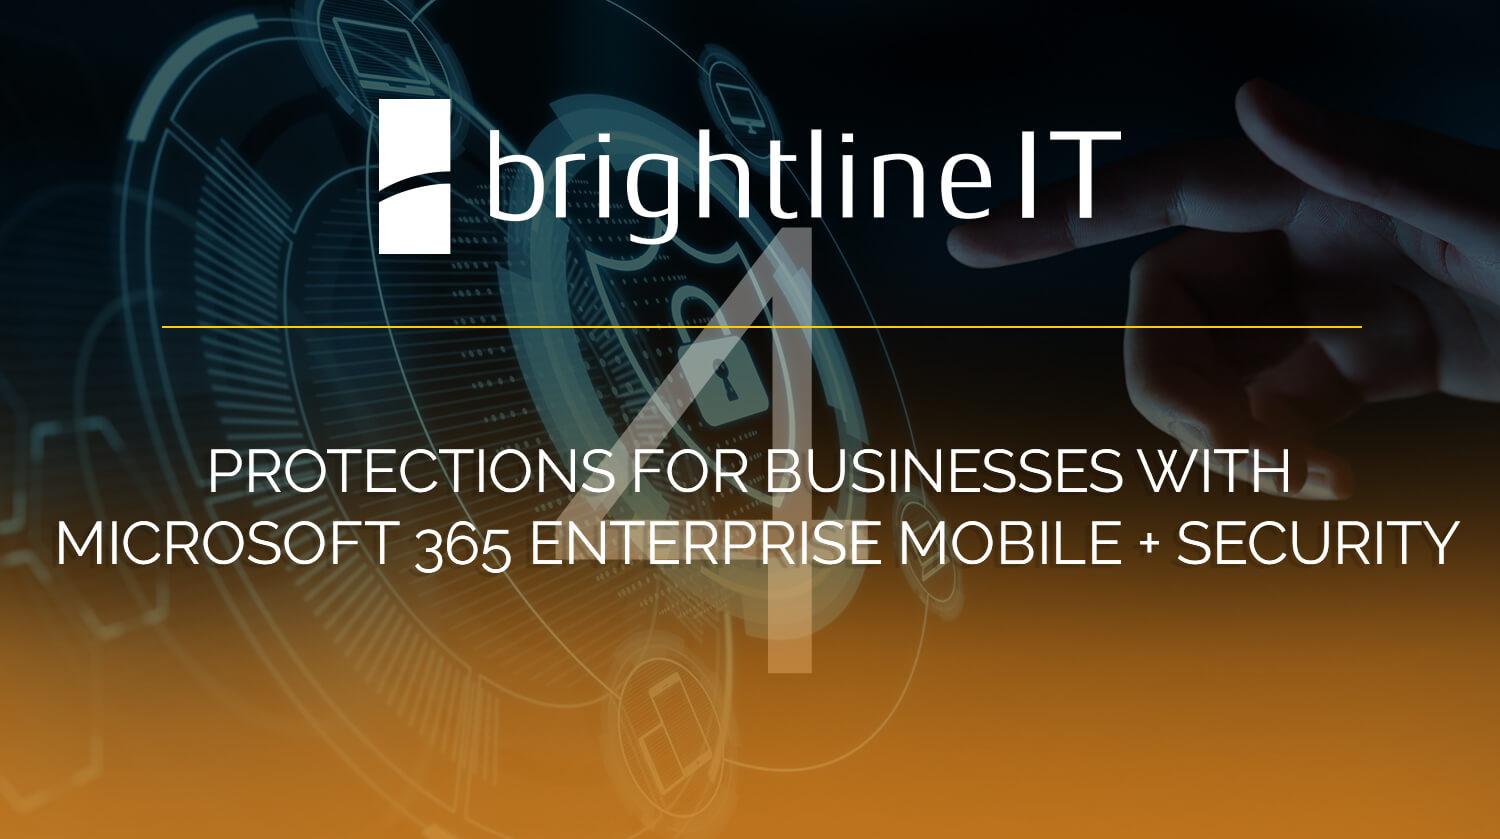 4 Protections for Businesses with Microsoft 365 Enterprise Mobile + Security